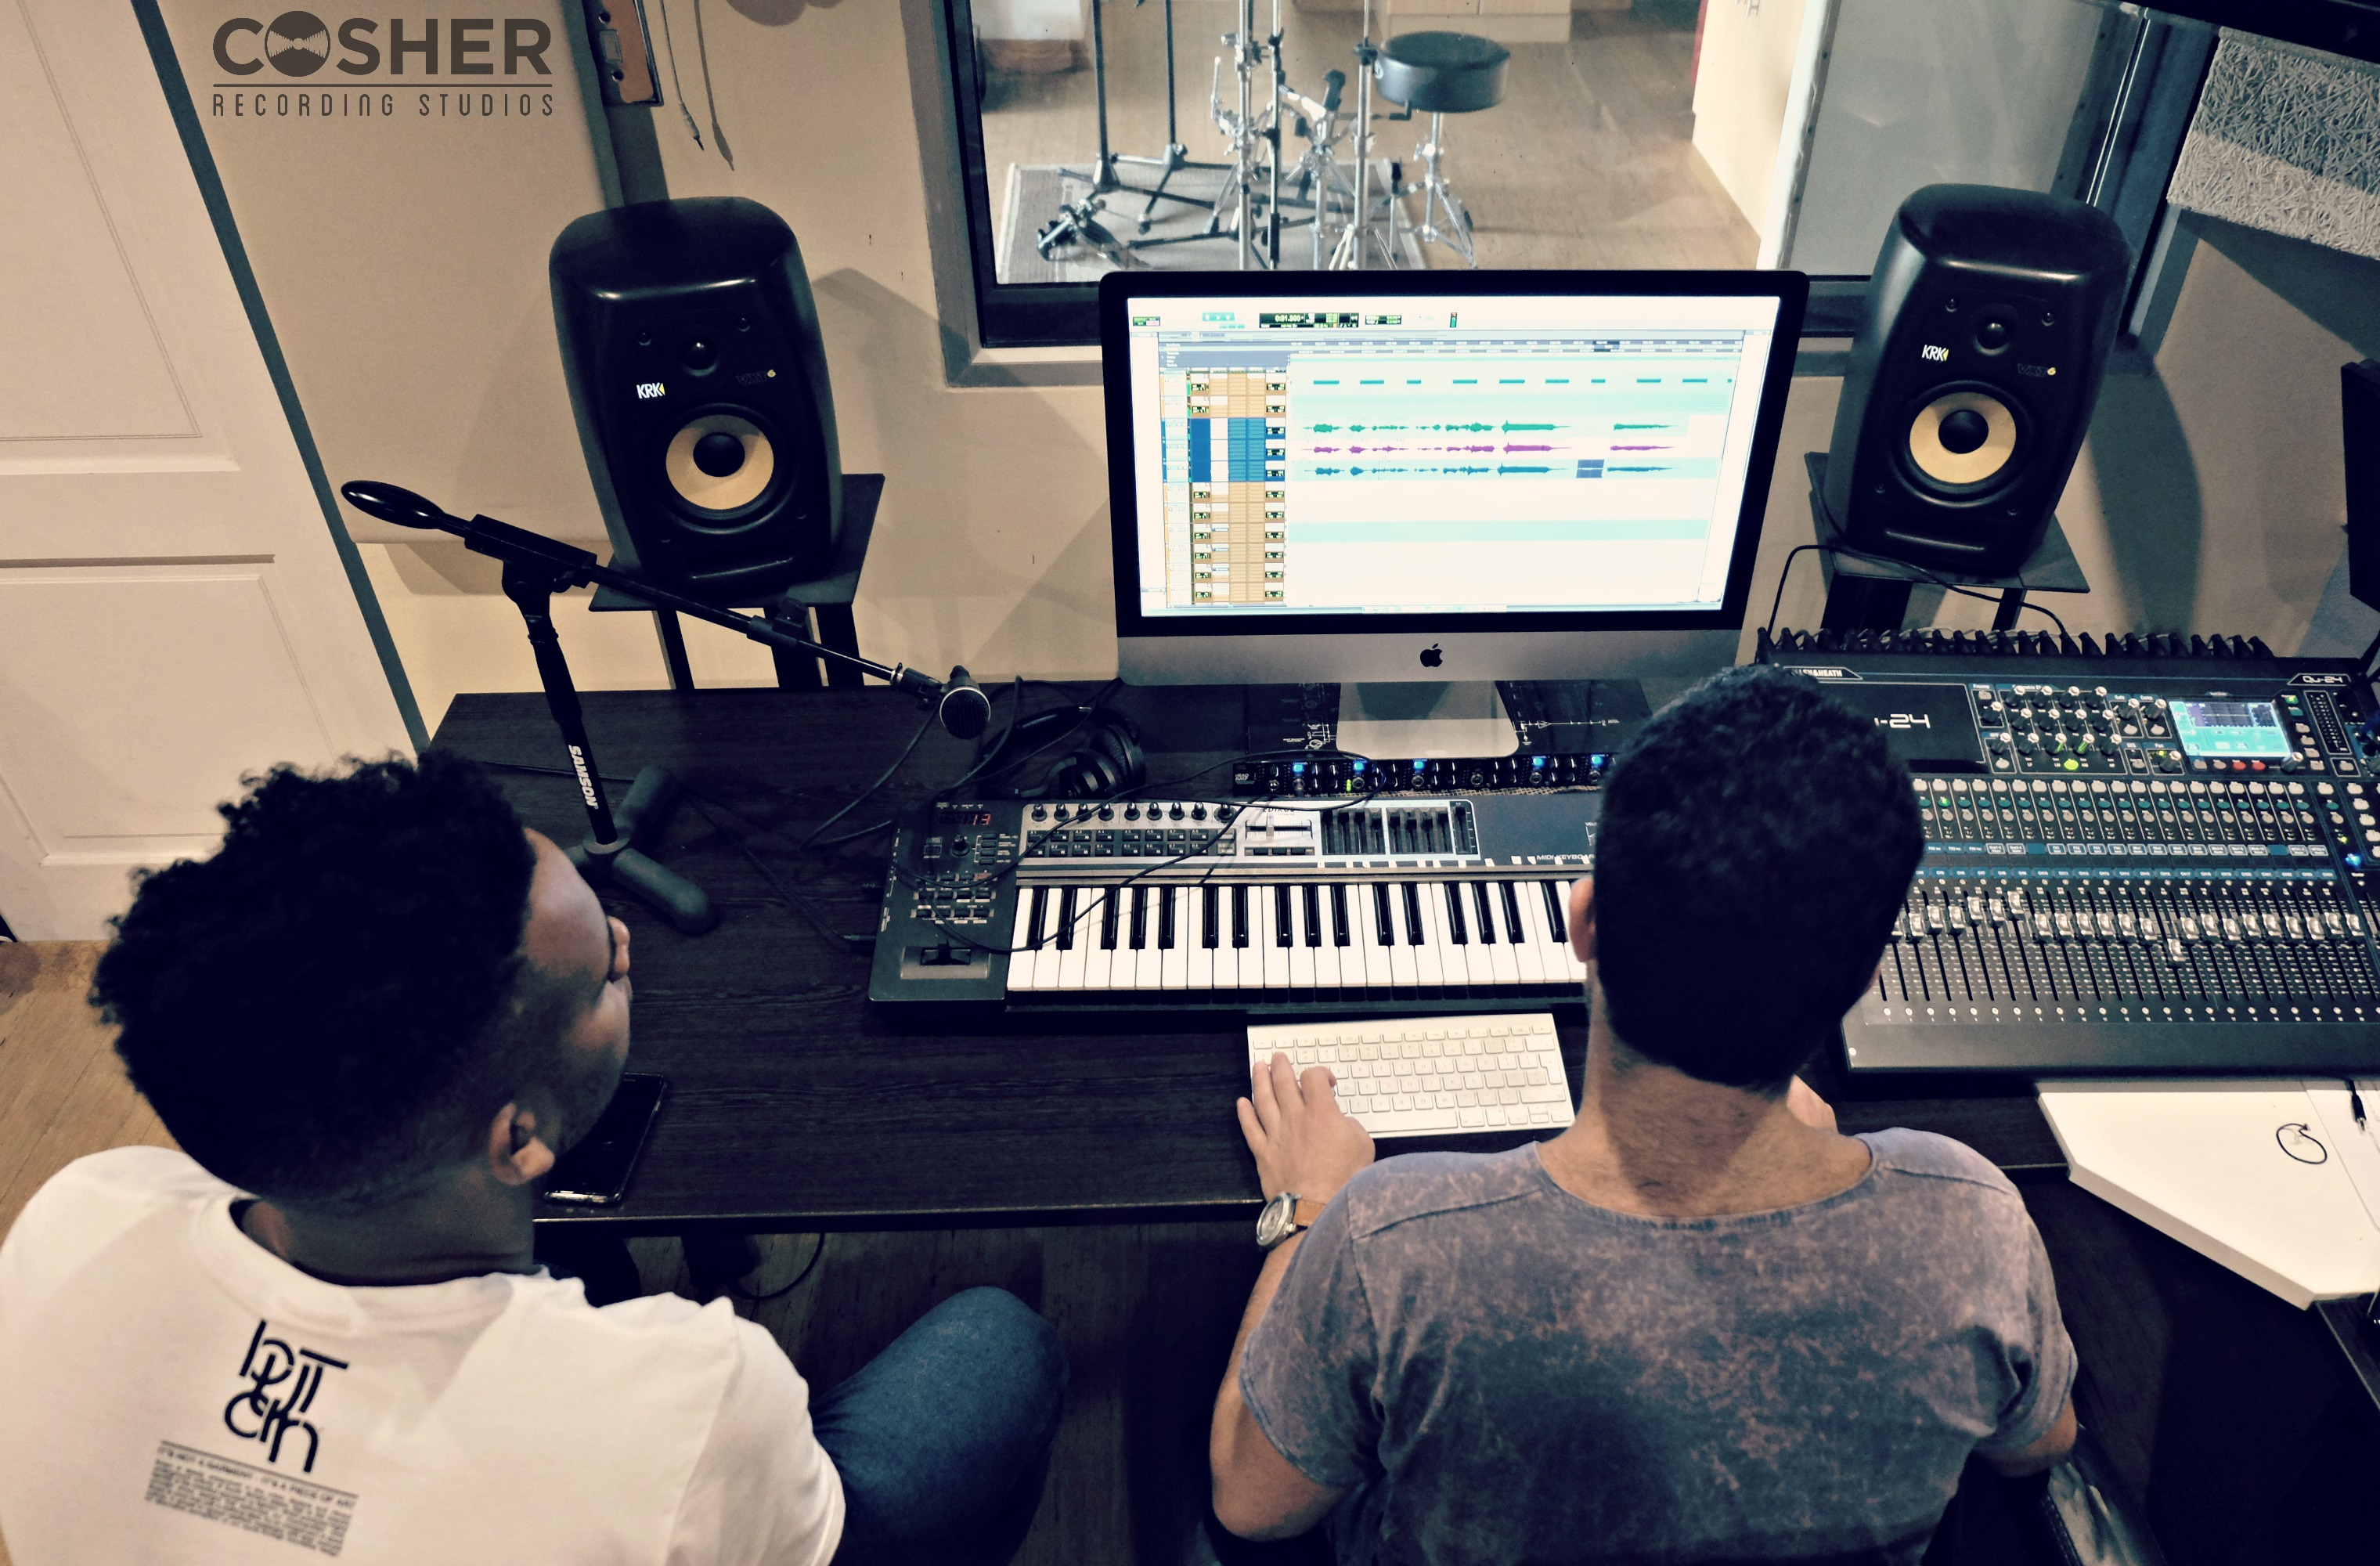 Cosher & Chad Saaiman Collaboration